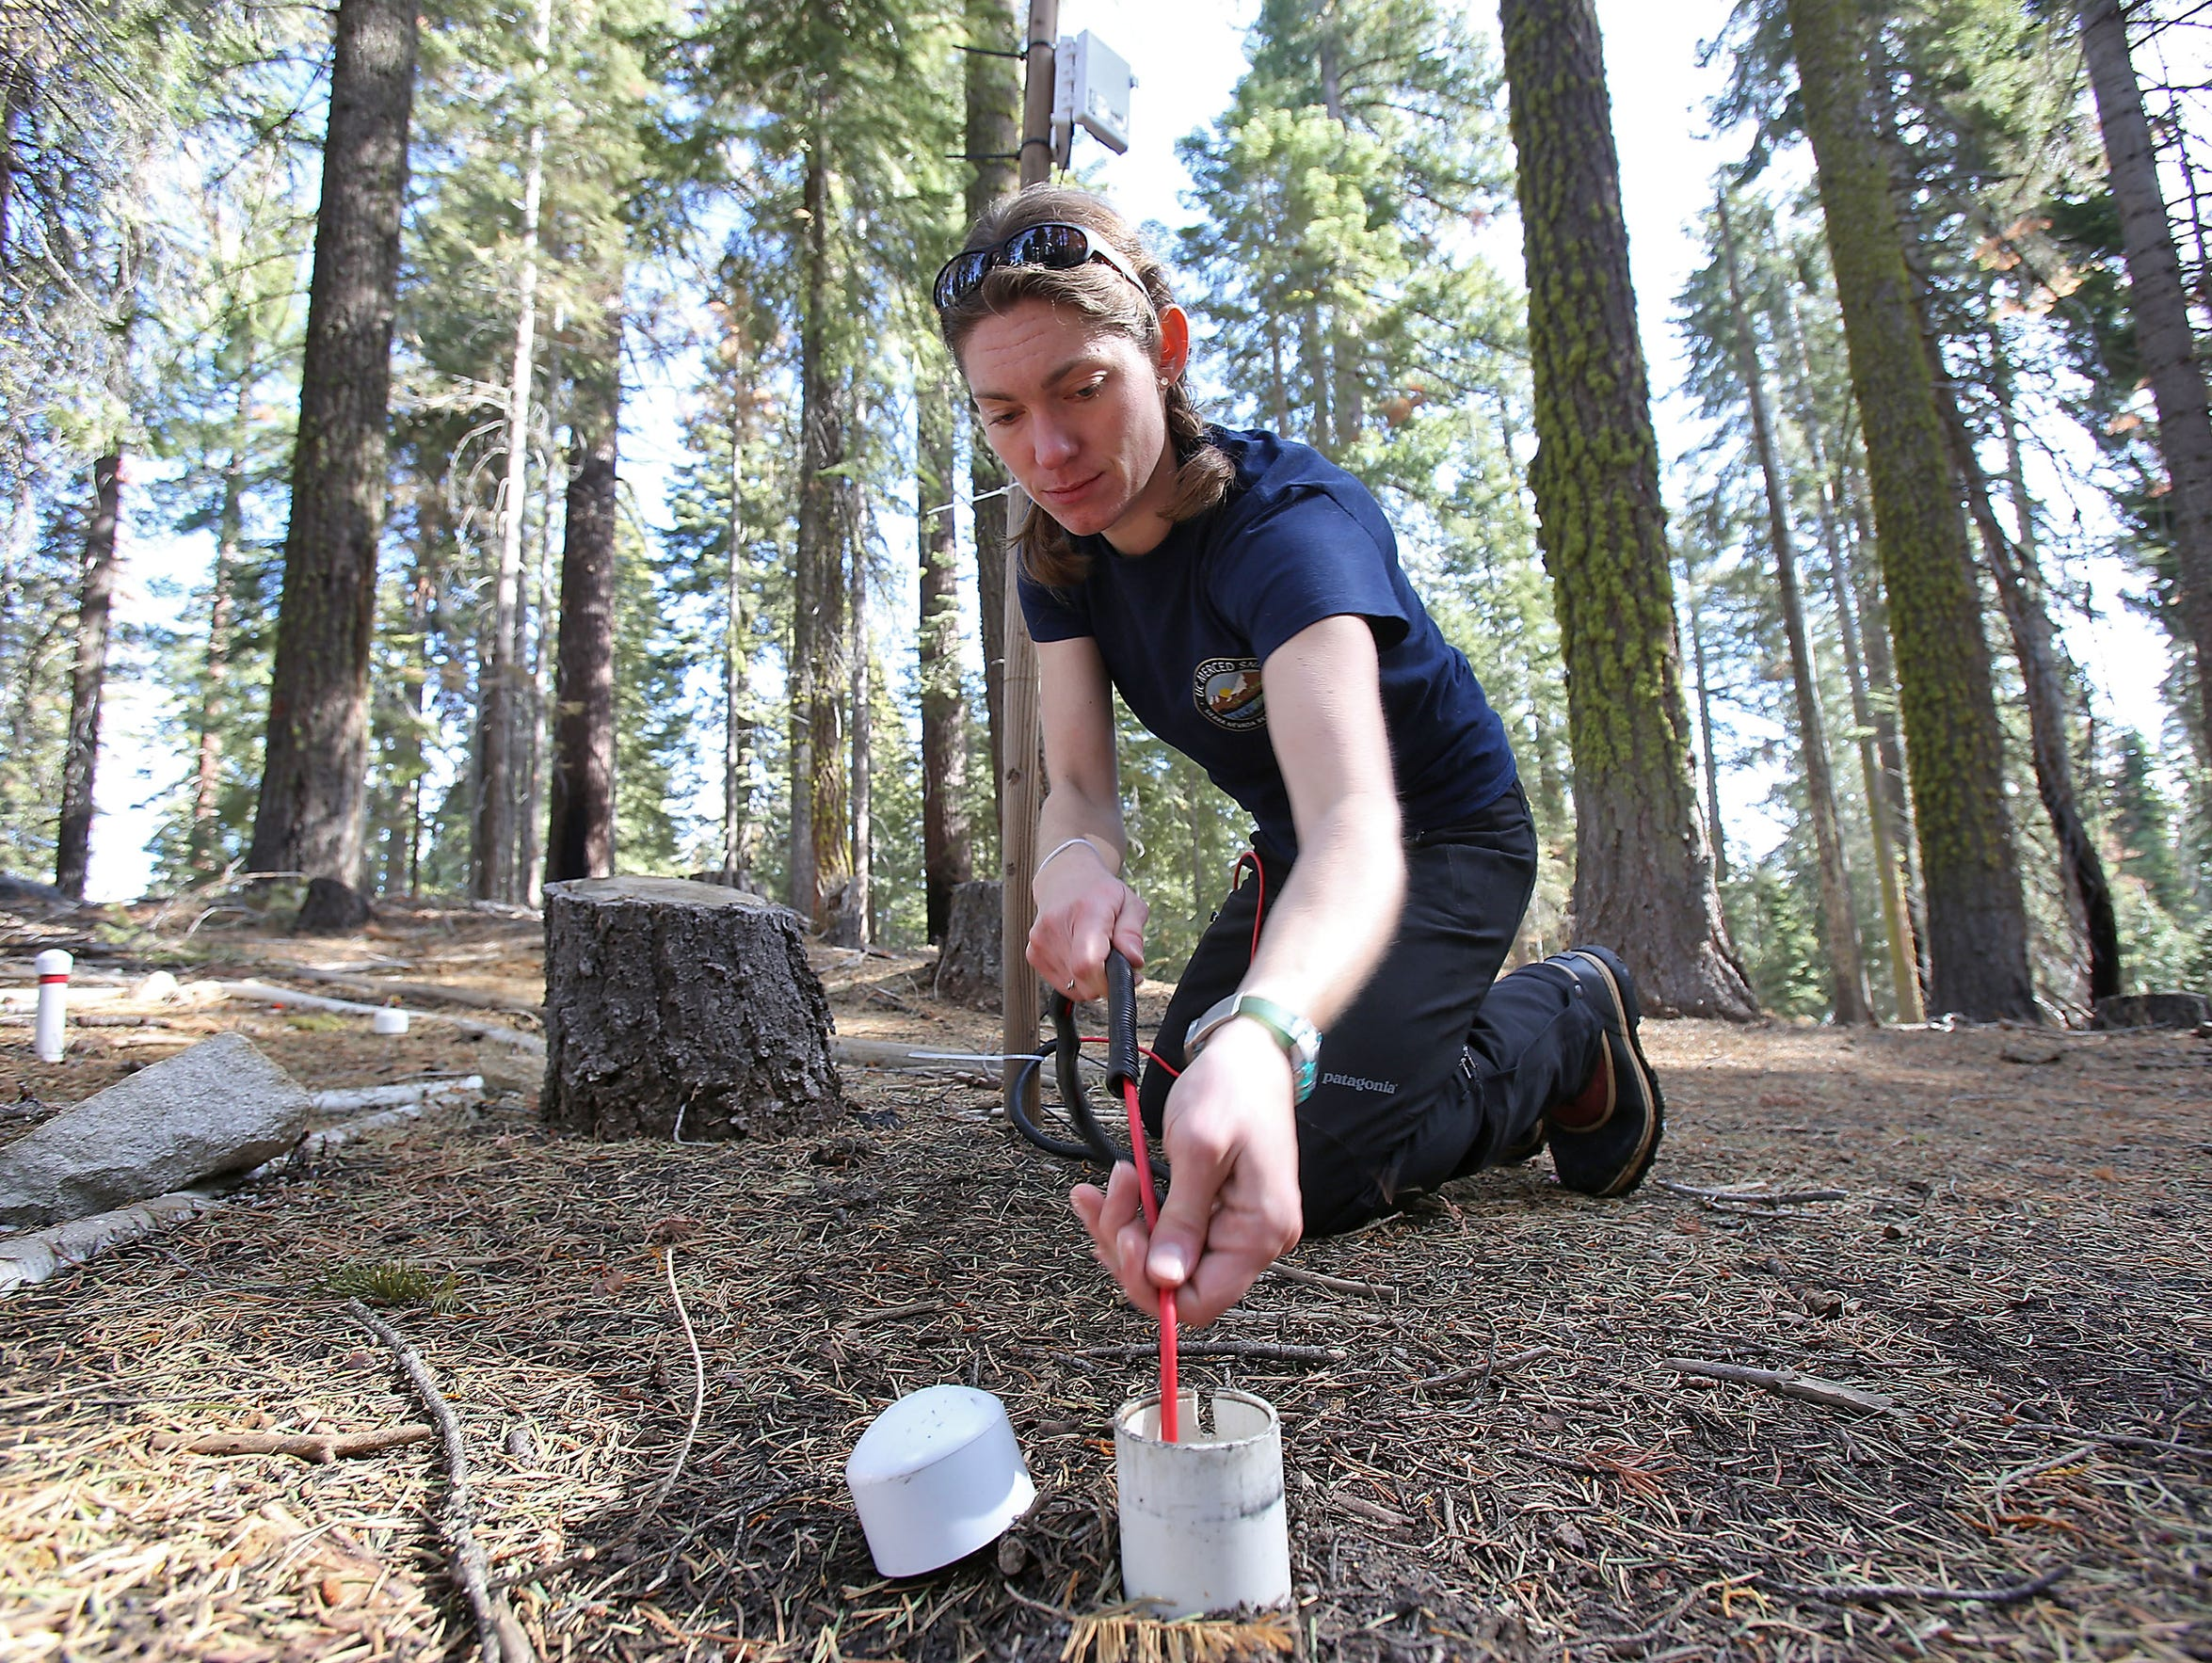 Erin Stacy, a scientist with the Sierra Nevada Research